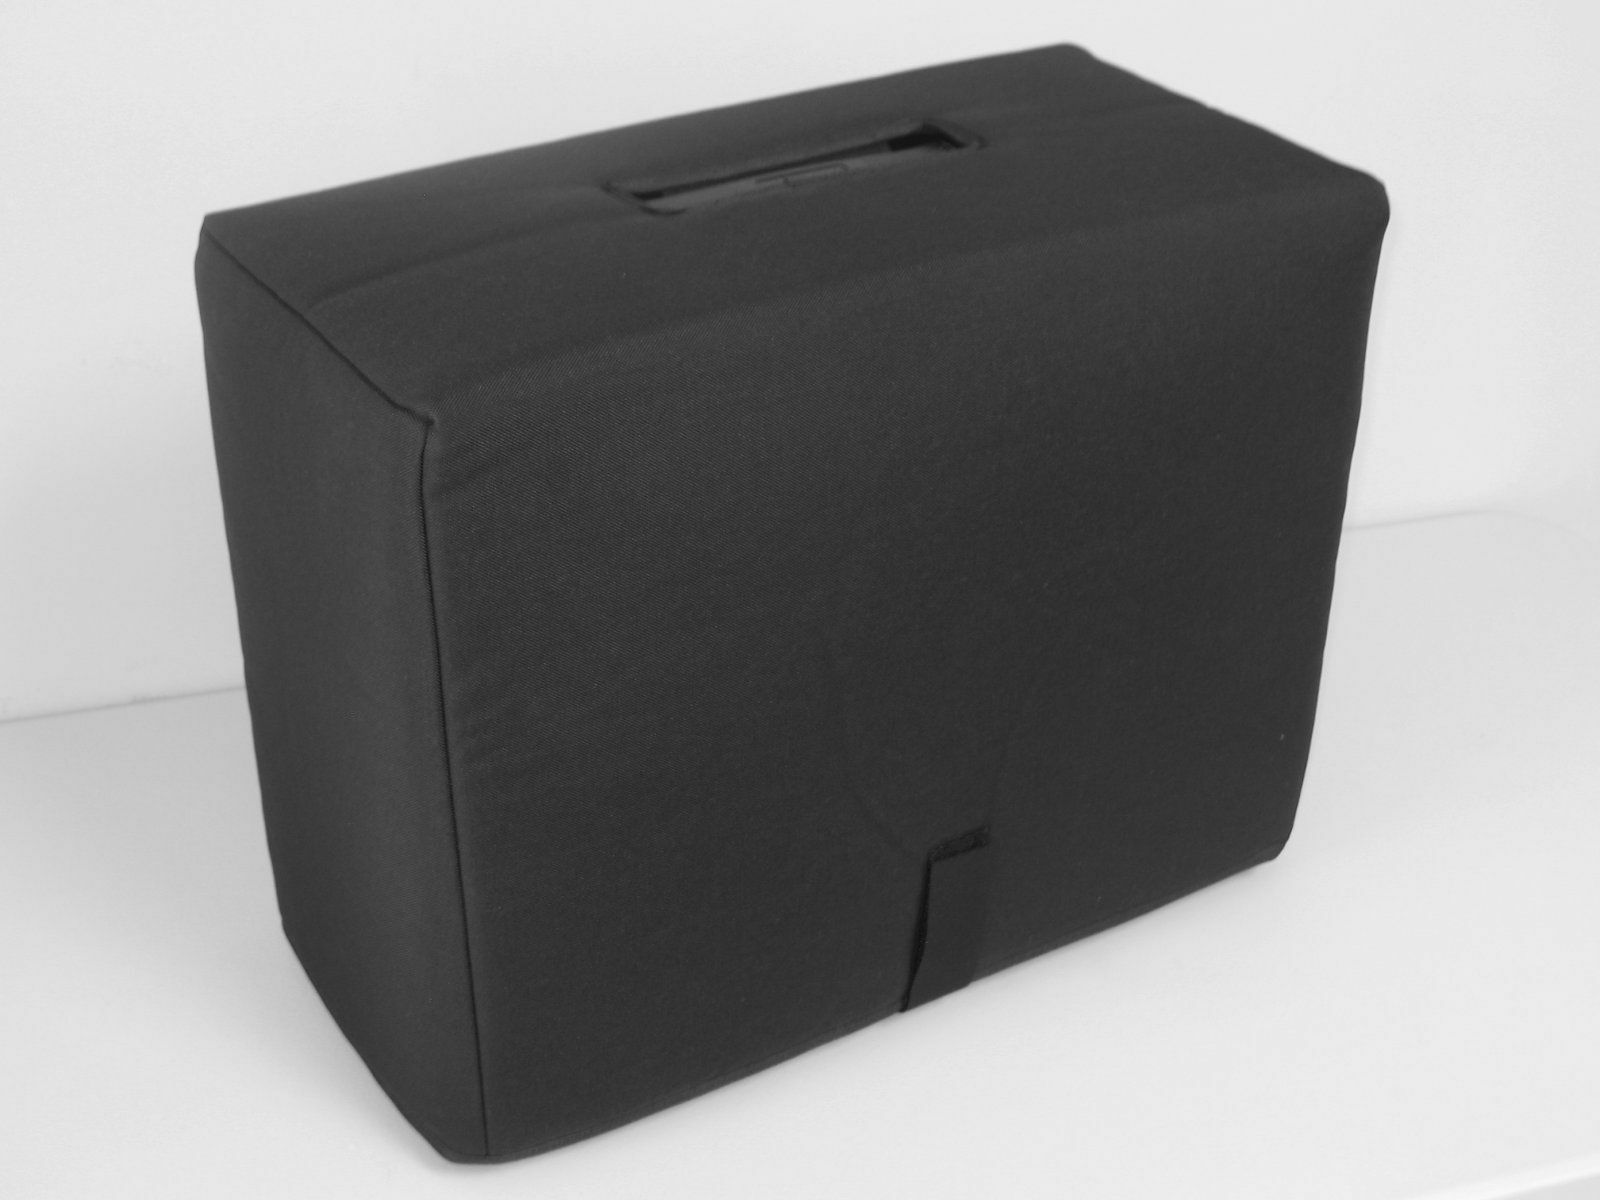 Tuki Padded Amp Cover for Line 6 DT-50 1x12 Amplifier Combo 1 2  Foam (line046p)